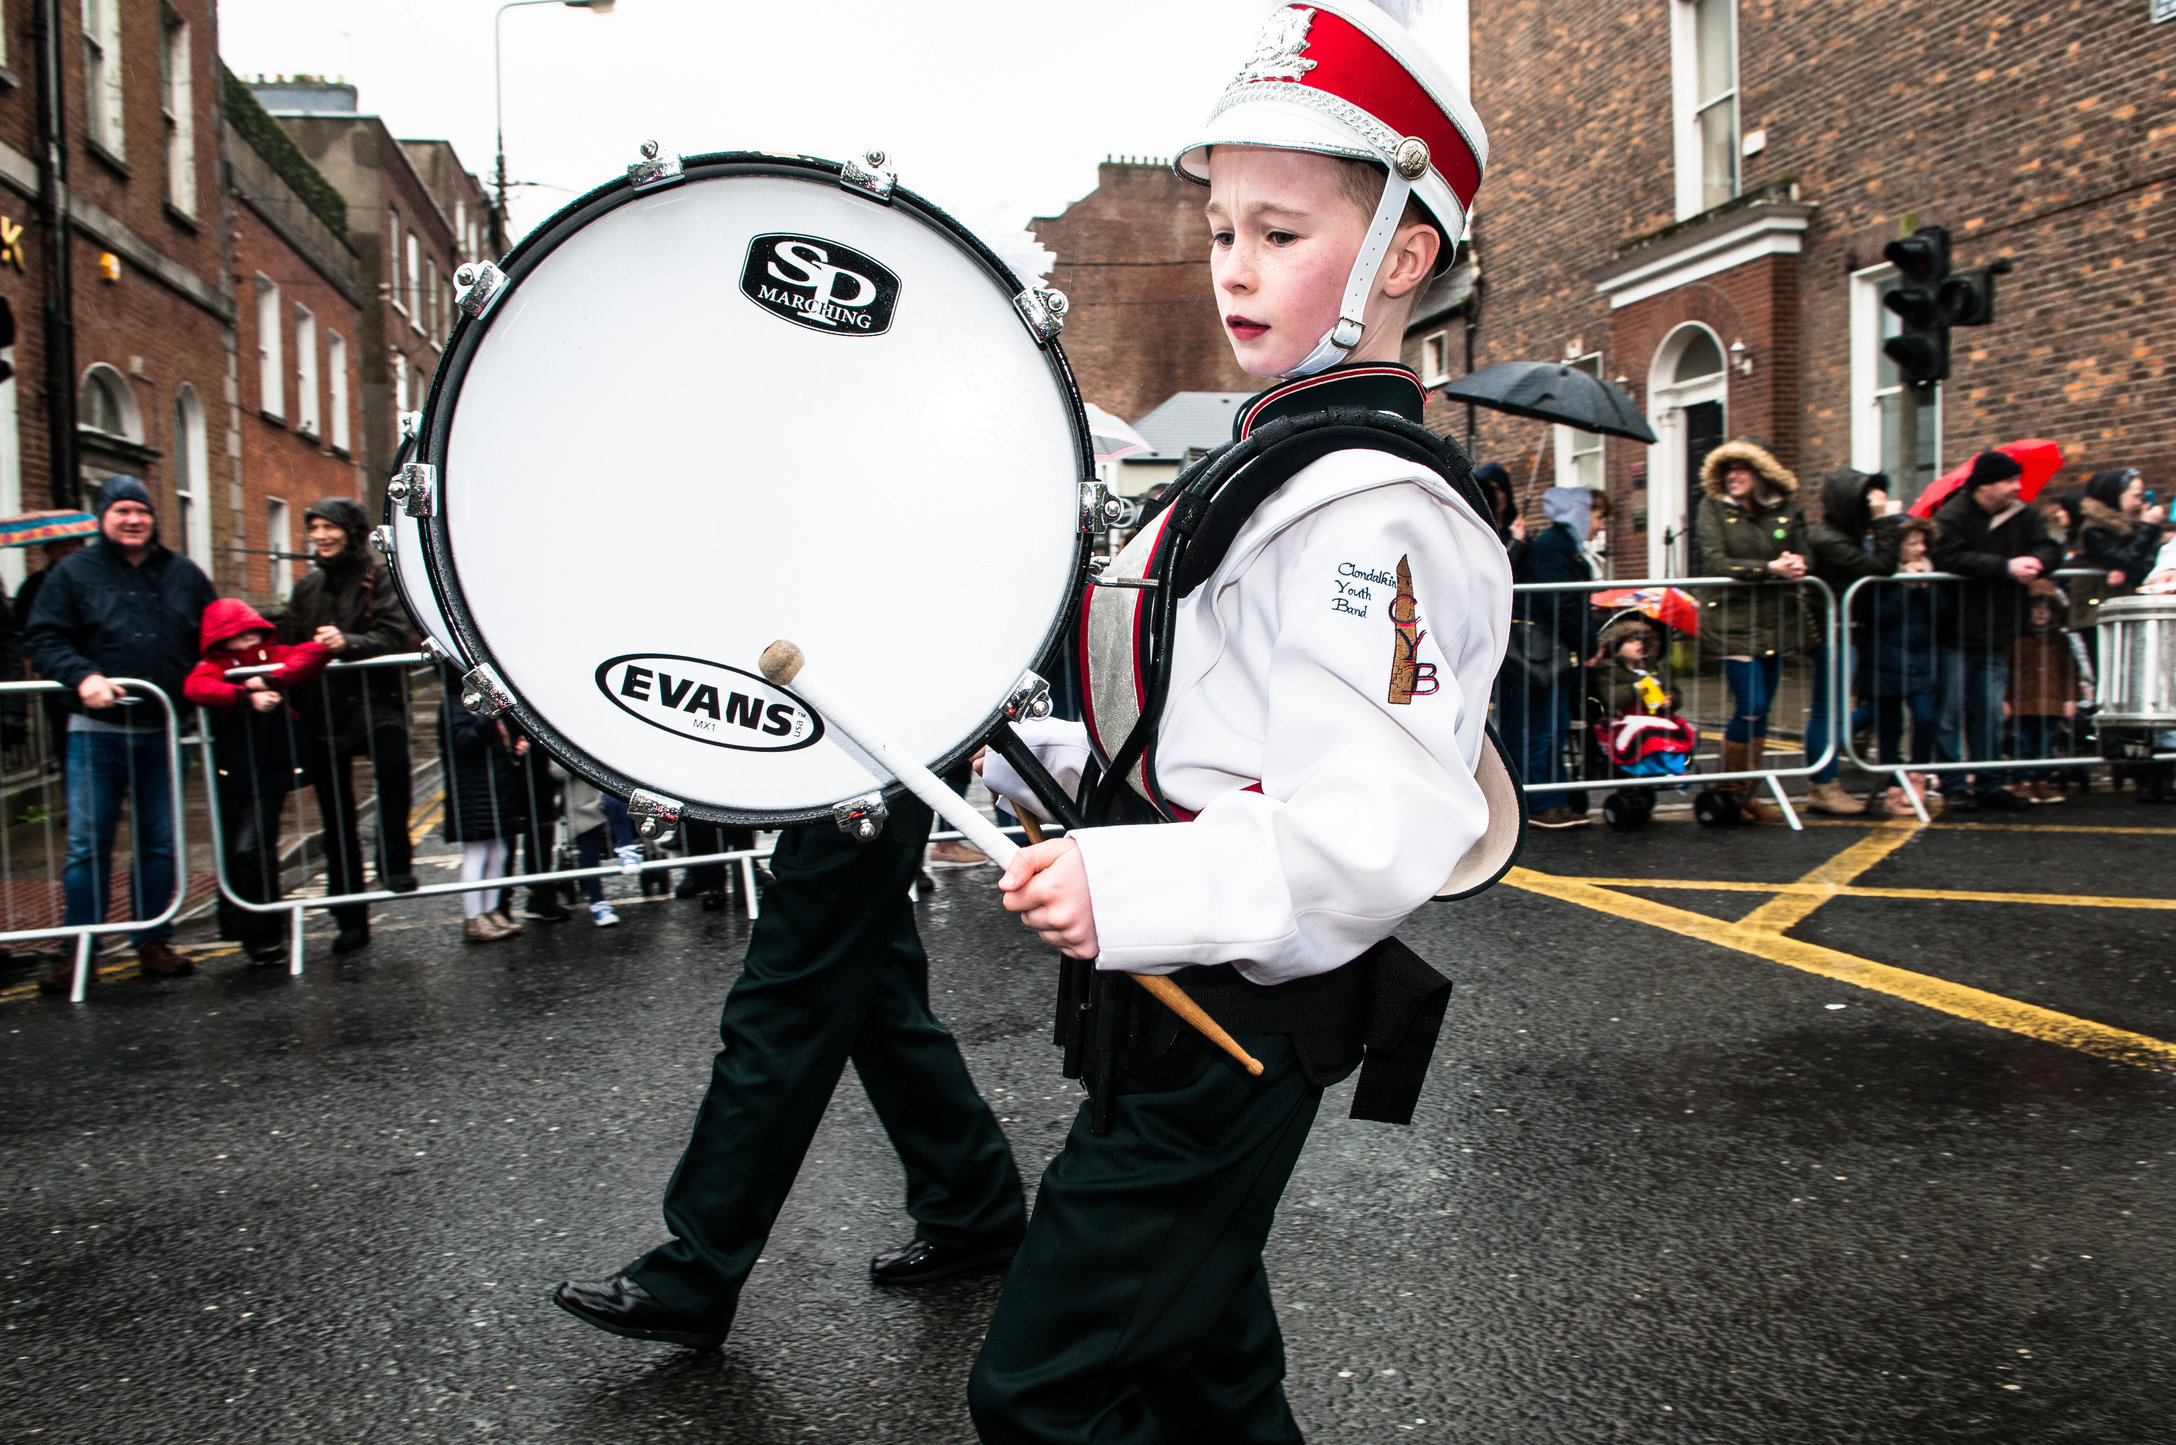 Drummer, Clondalkin Youth Band